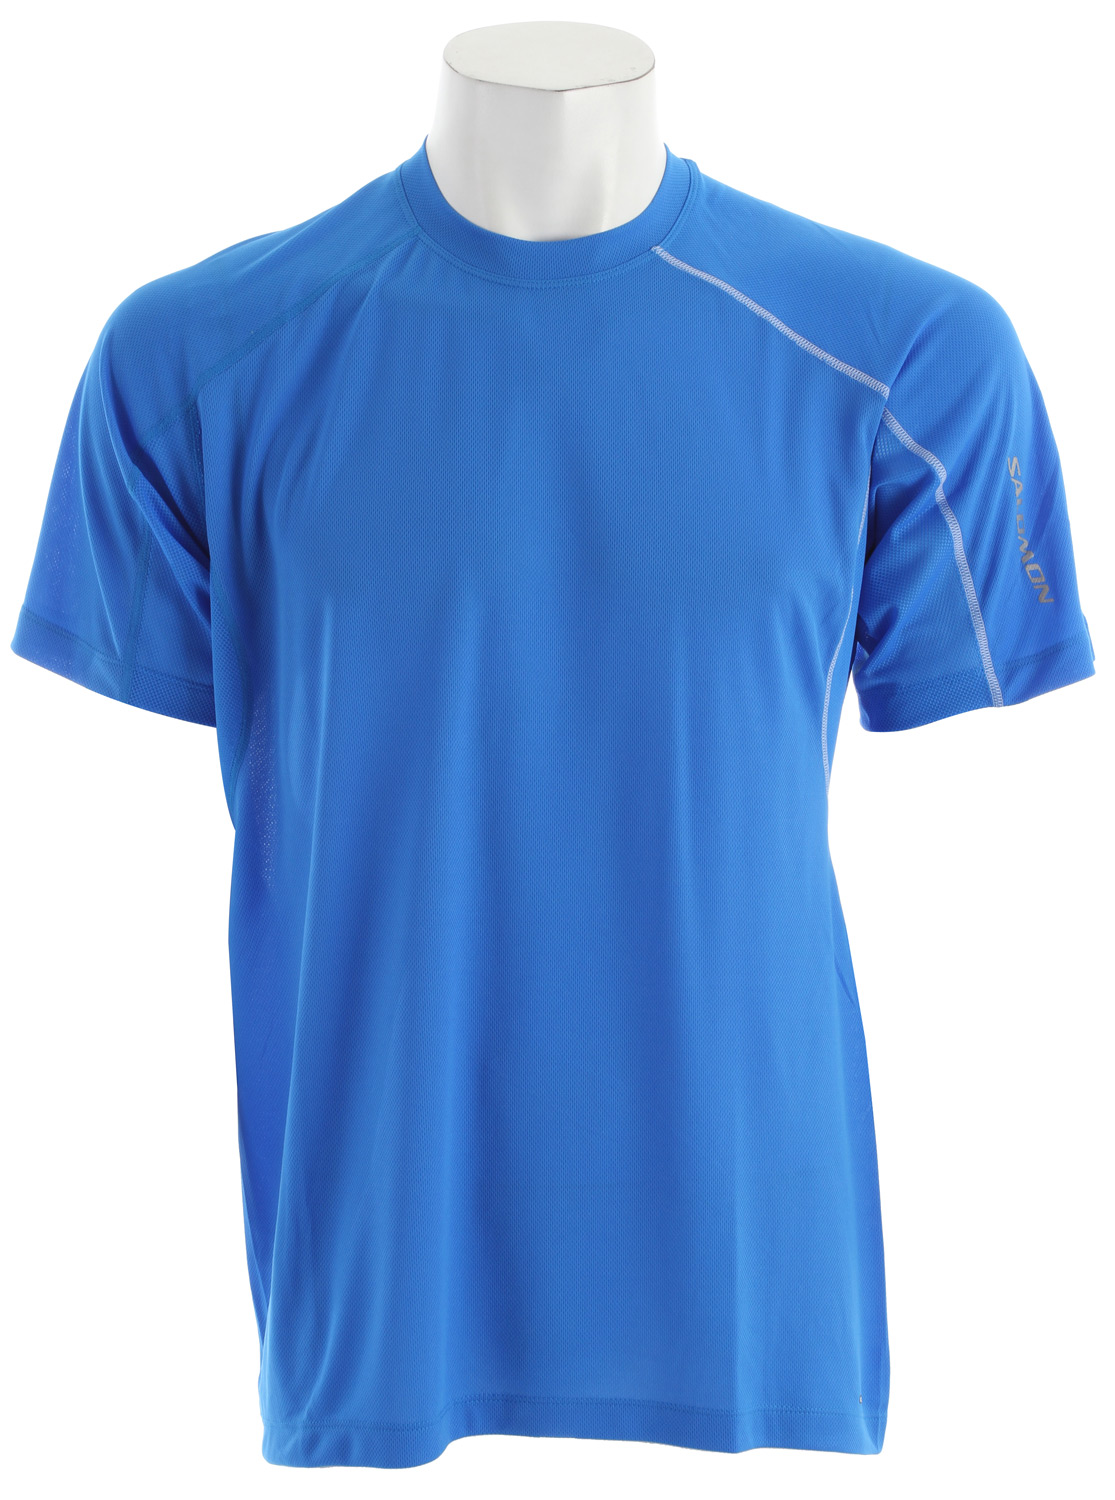 Fitness Relaxed fitting, versatile tee for running and outdoor sports with mesh pit vent panels, updated seam detailing and stash pocket.Key Features of the Salomon Trial IV T-Shirt:  Smart Skin  Actilite poly mock eylet  Actilite stretch mesh  Reflective branding front & back  Stash pocket  Flatlock seams  Body: PES 100%  Relax fit  120g - $25.95